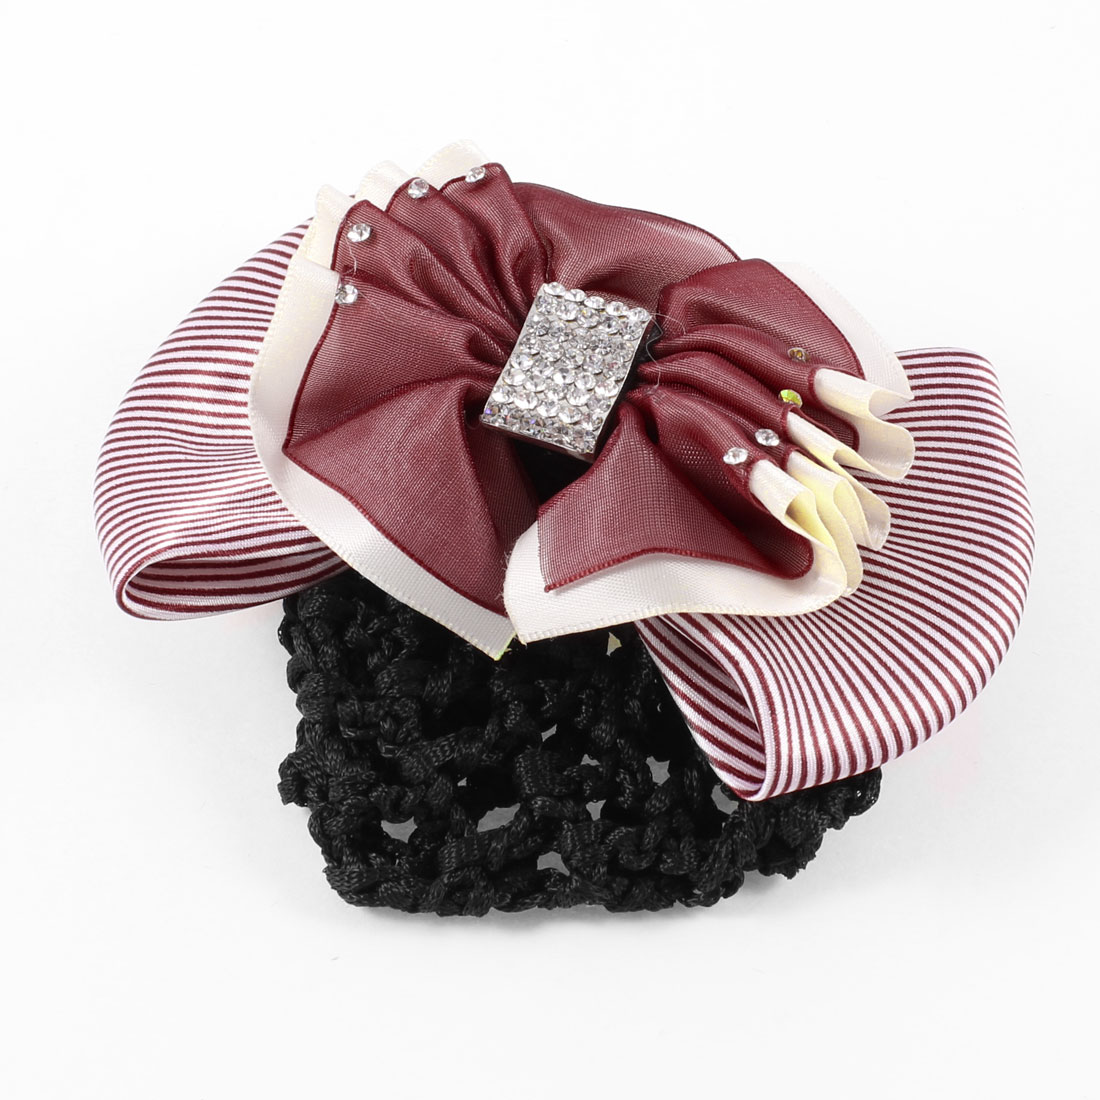 Burgundy White Ruffled Striped Bowknot Snood Net French Hair Clip Barrette